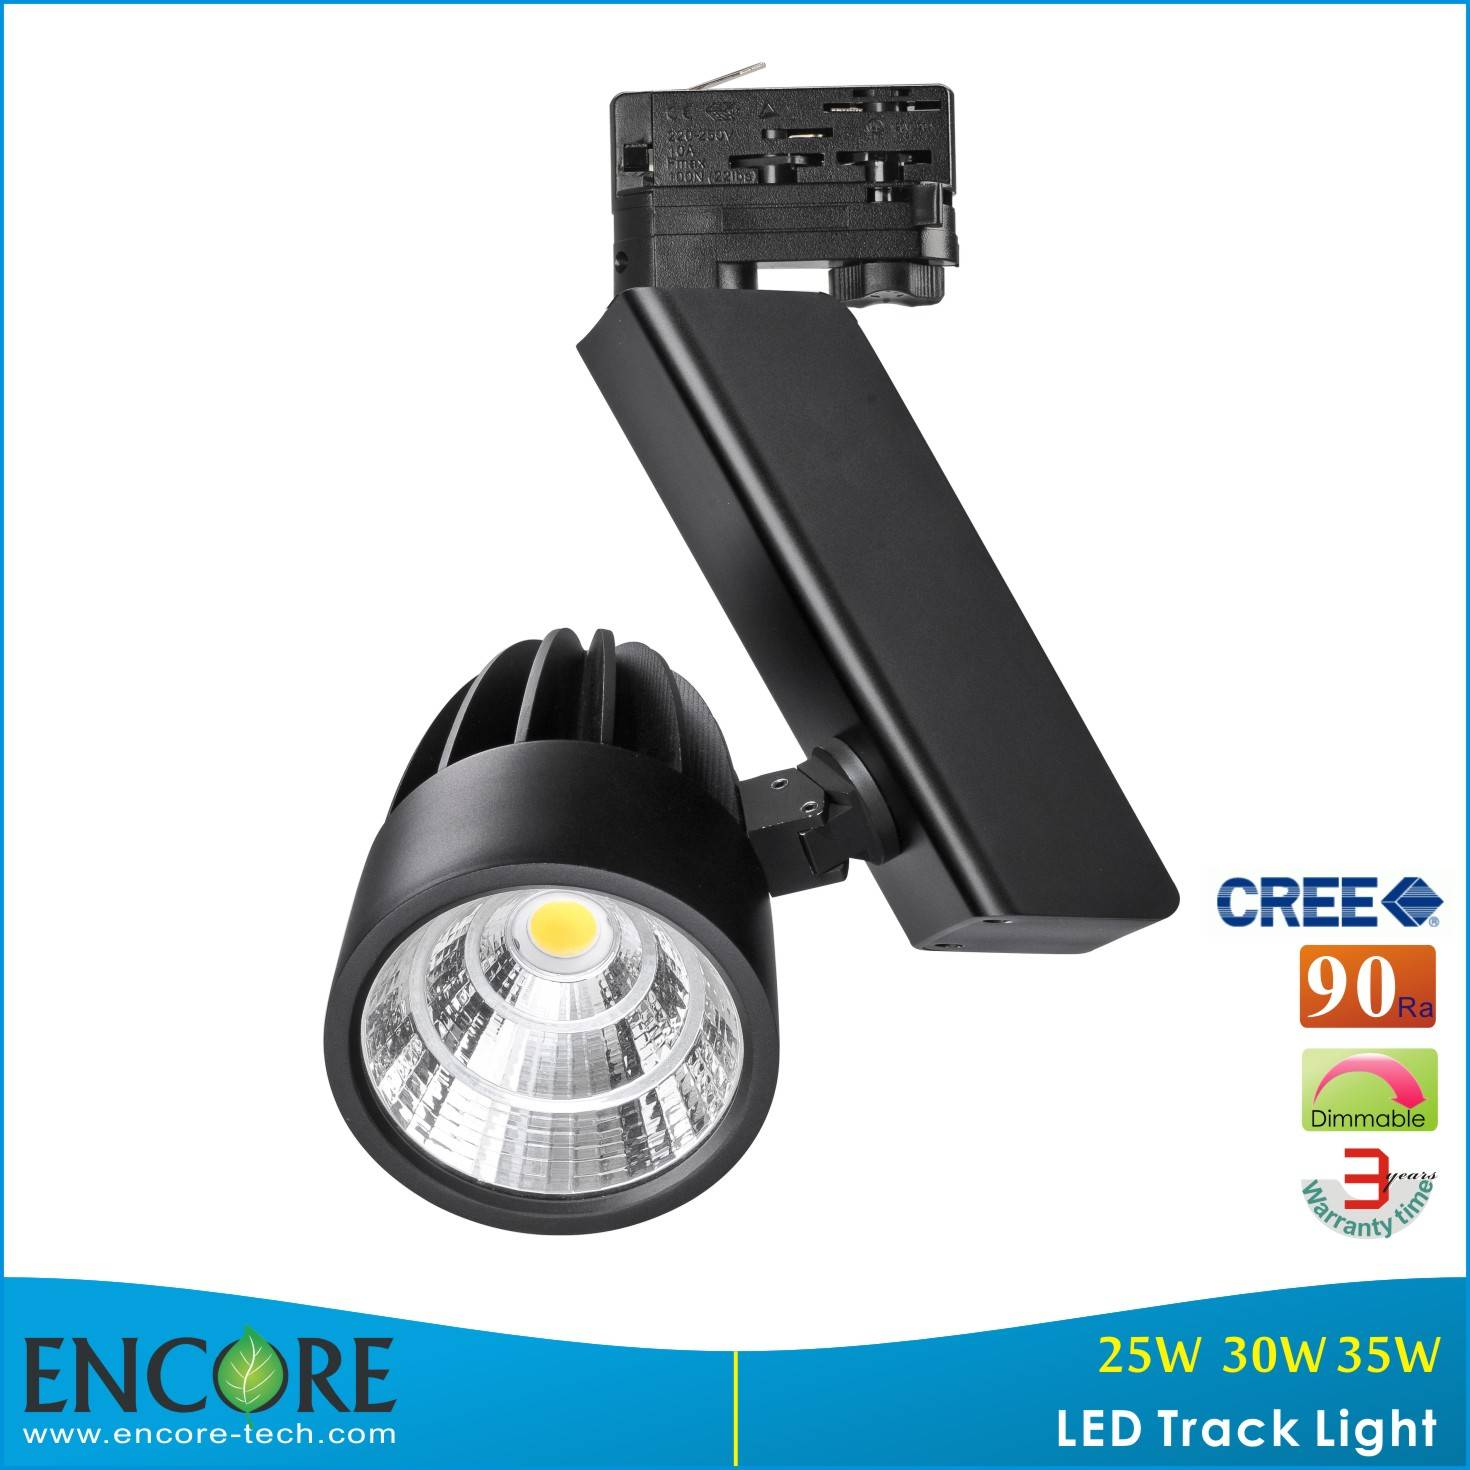 30W dimmable CREE Led Track Lighting with Meanwell driver